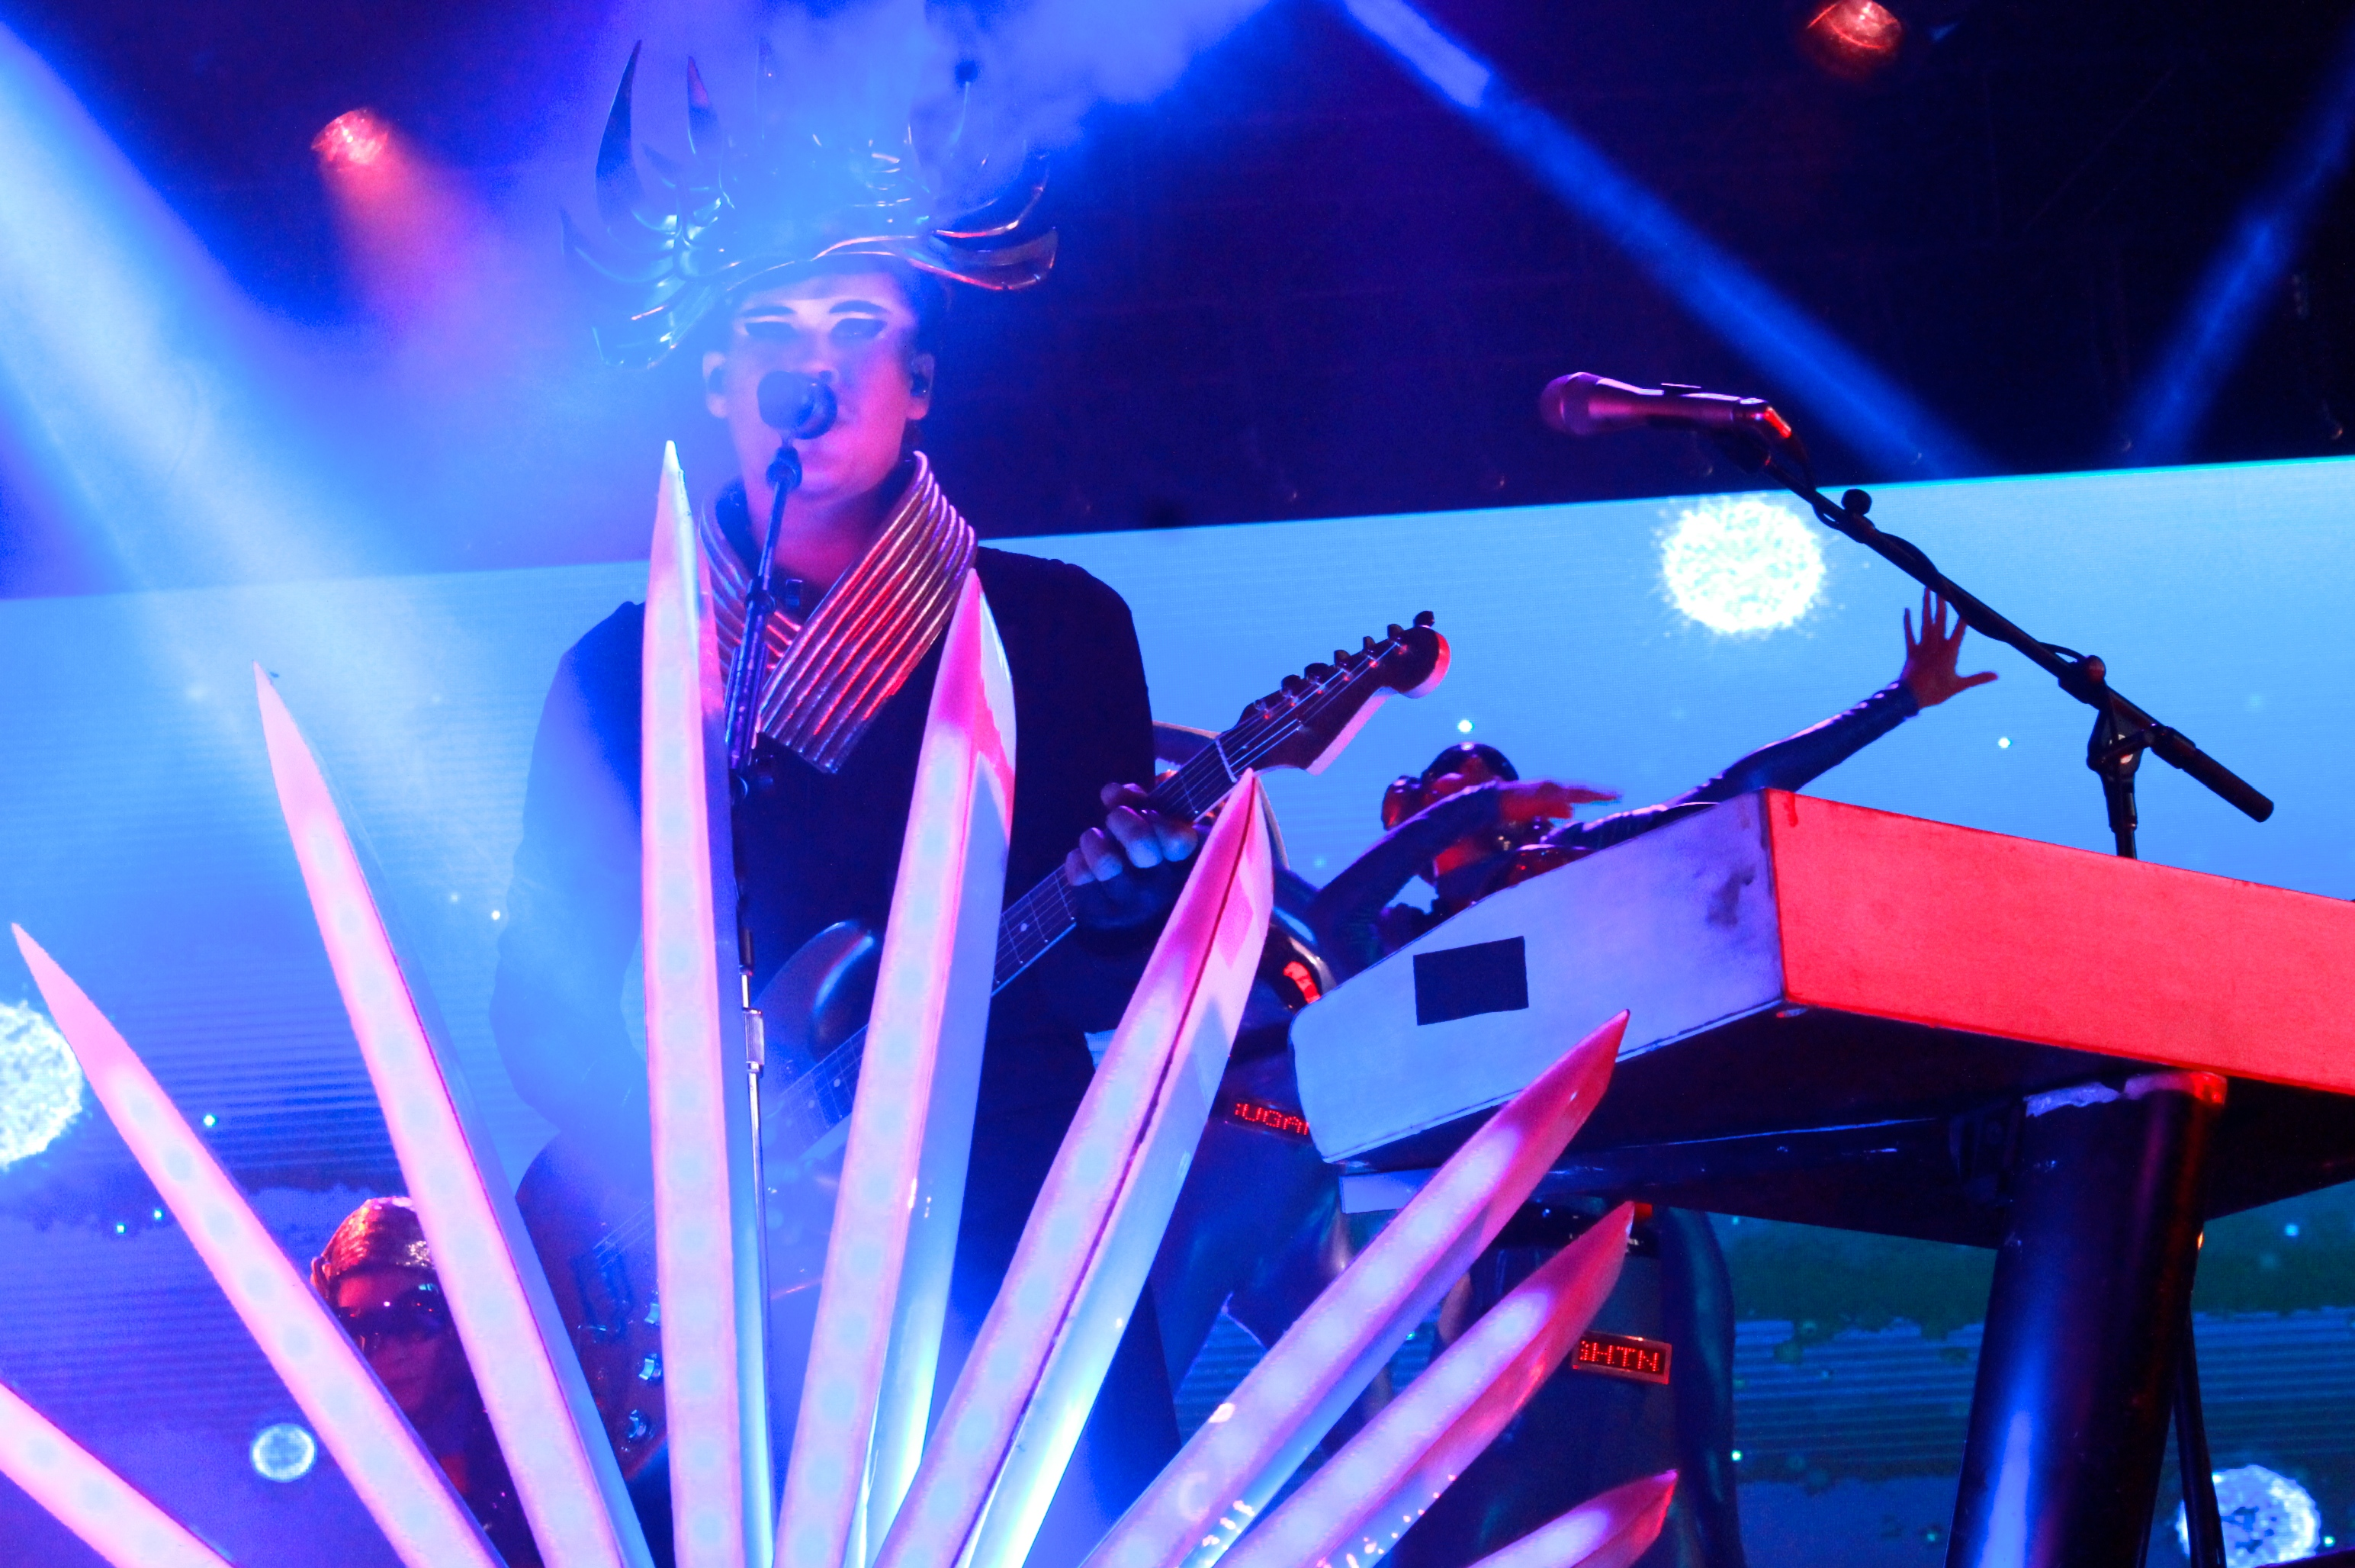 Luke Steele Of Empire Of The Sun and Daniel Johns Of Silverchair Join Forces For New Project Dreams and Will Play Coachella